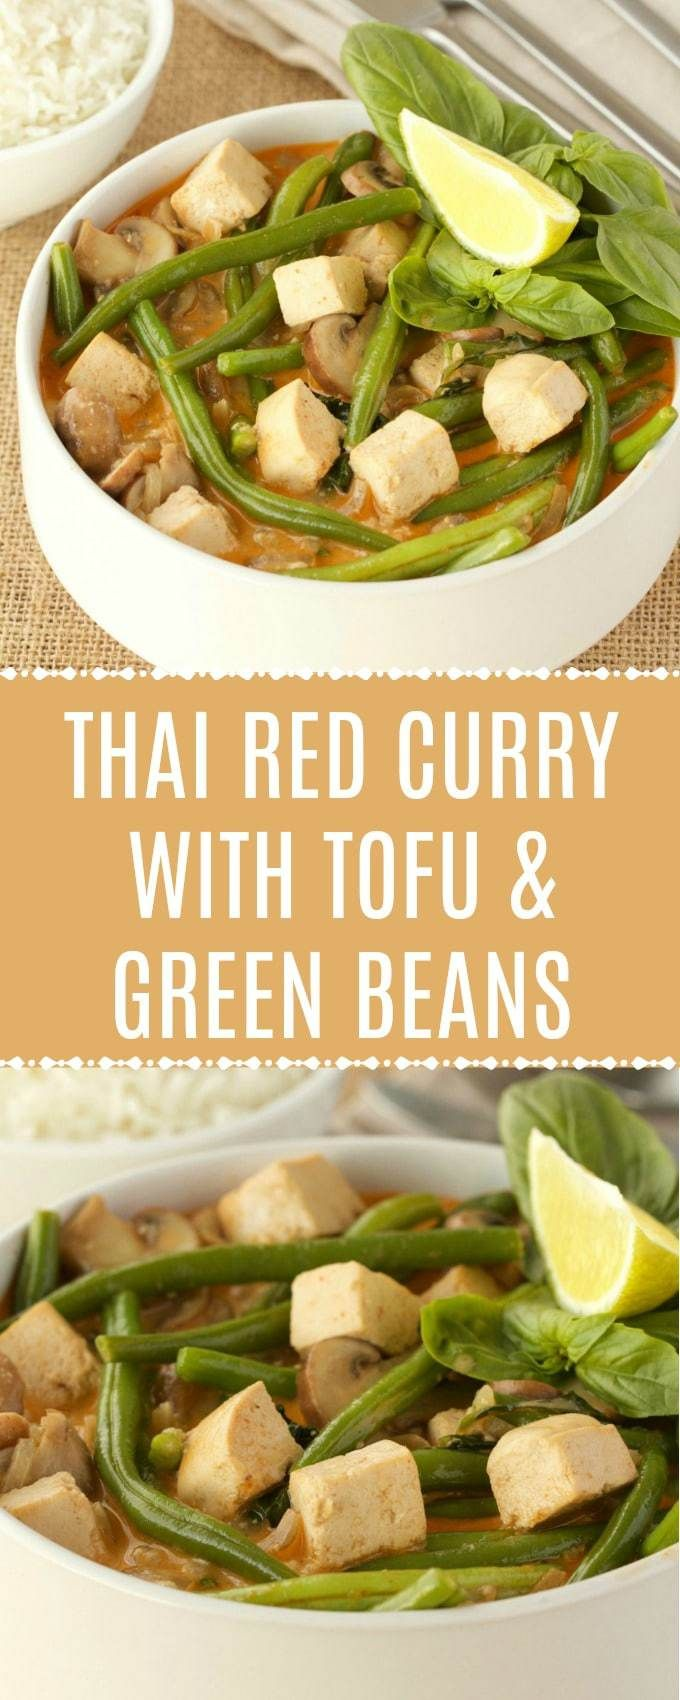 Rich And Mildly Spicy Thai Red Curry With Tofu And Green